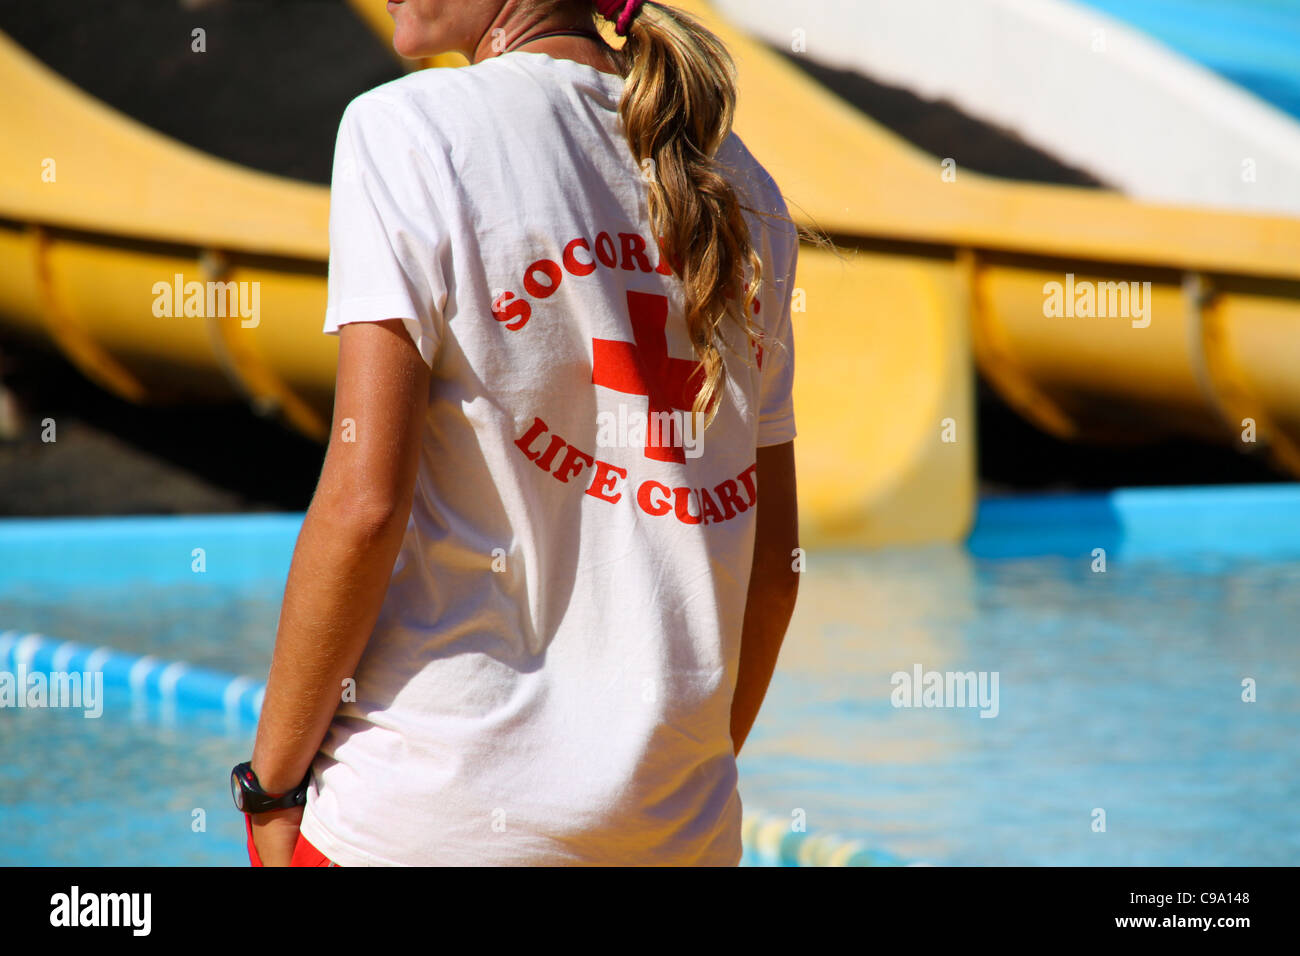 Lifeguard in water park